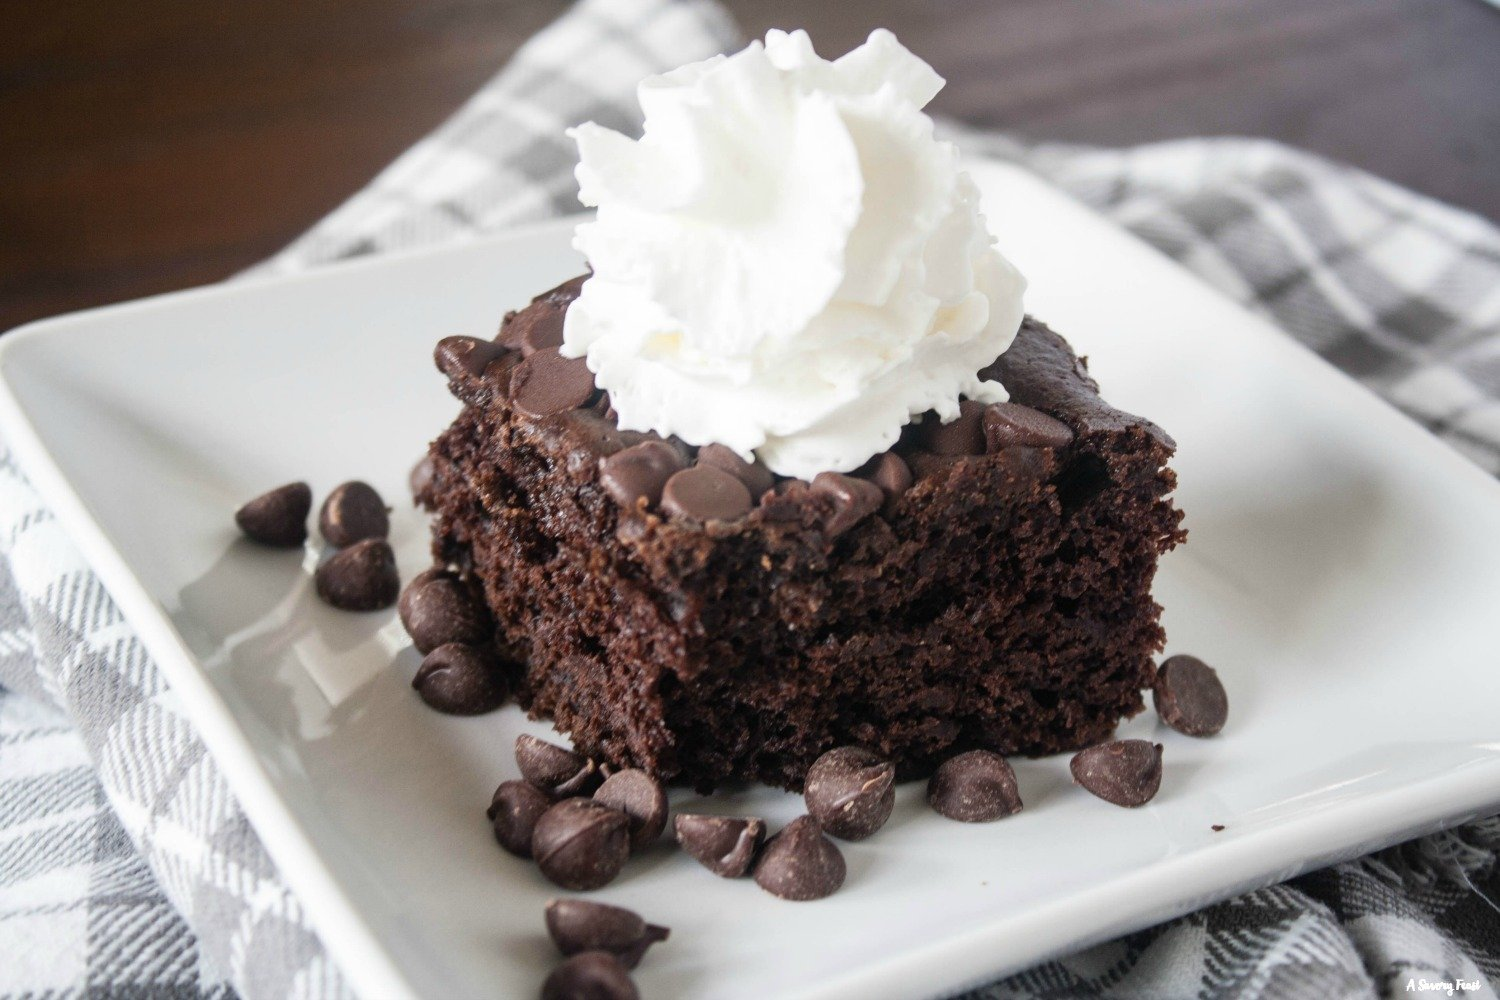 You won't believe how easy it is to make this rich chocolate cake!